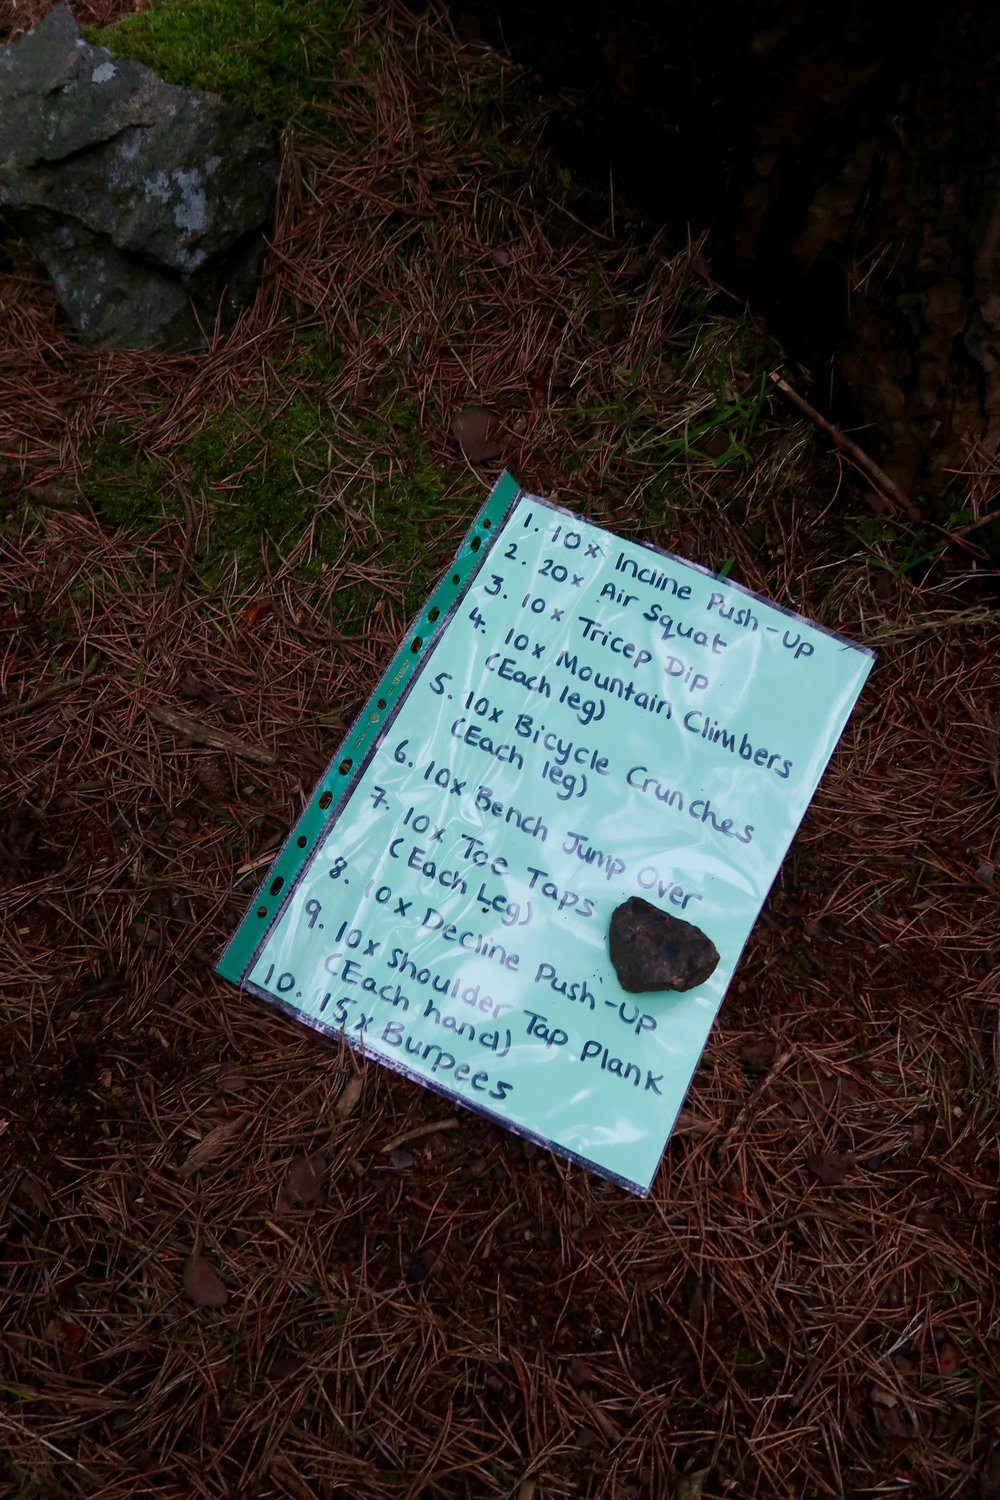 Exercises for the Tribe in between a trail running loop completed each time they finish an exercise!